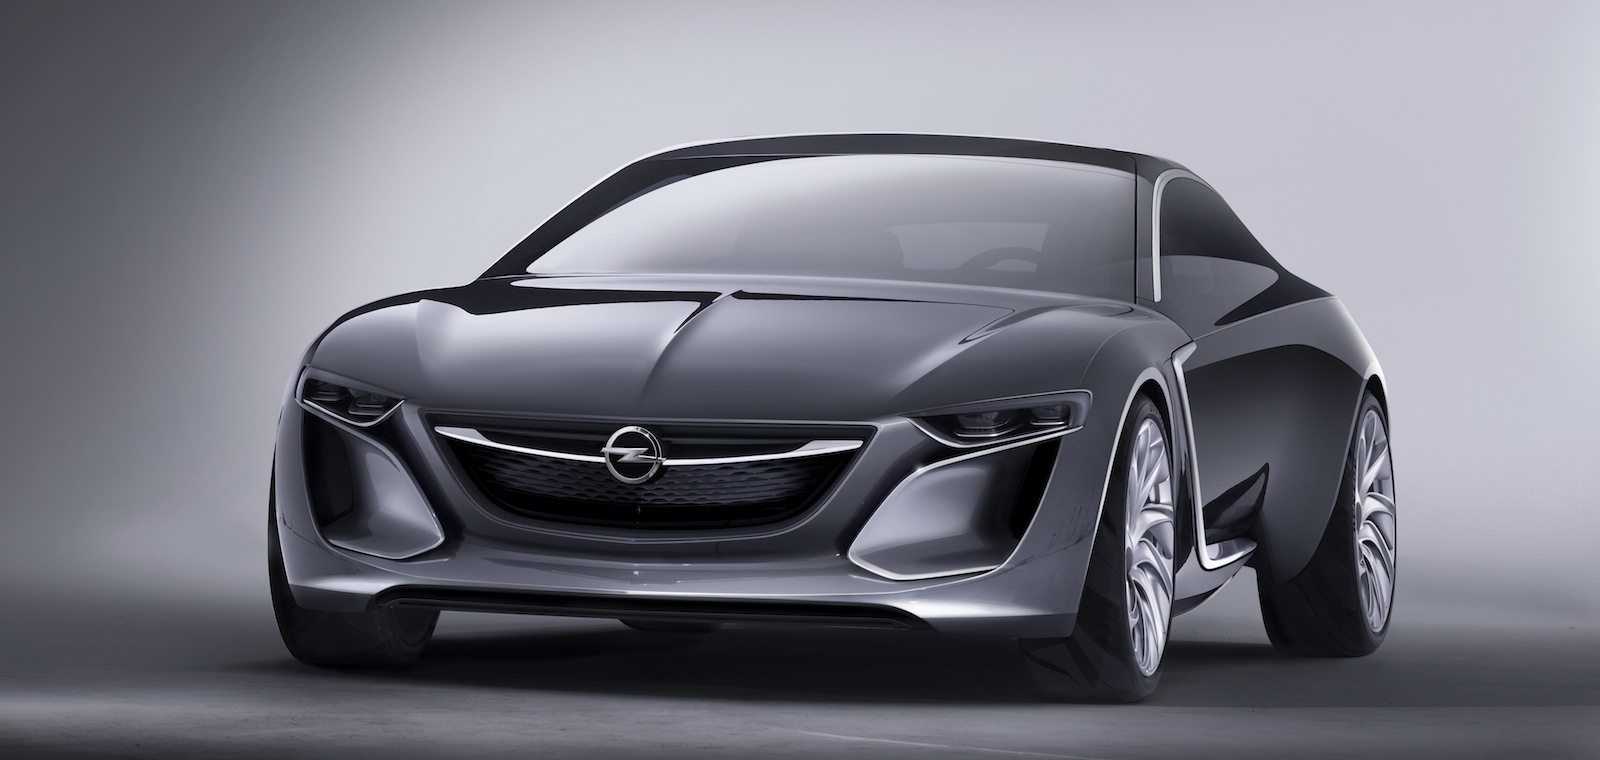 Opel monza concept four seat range extender revealed photos 1 of 9